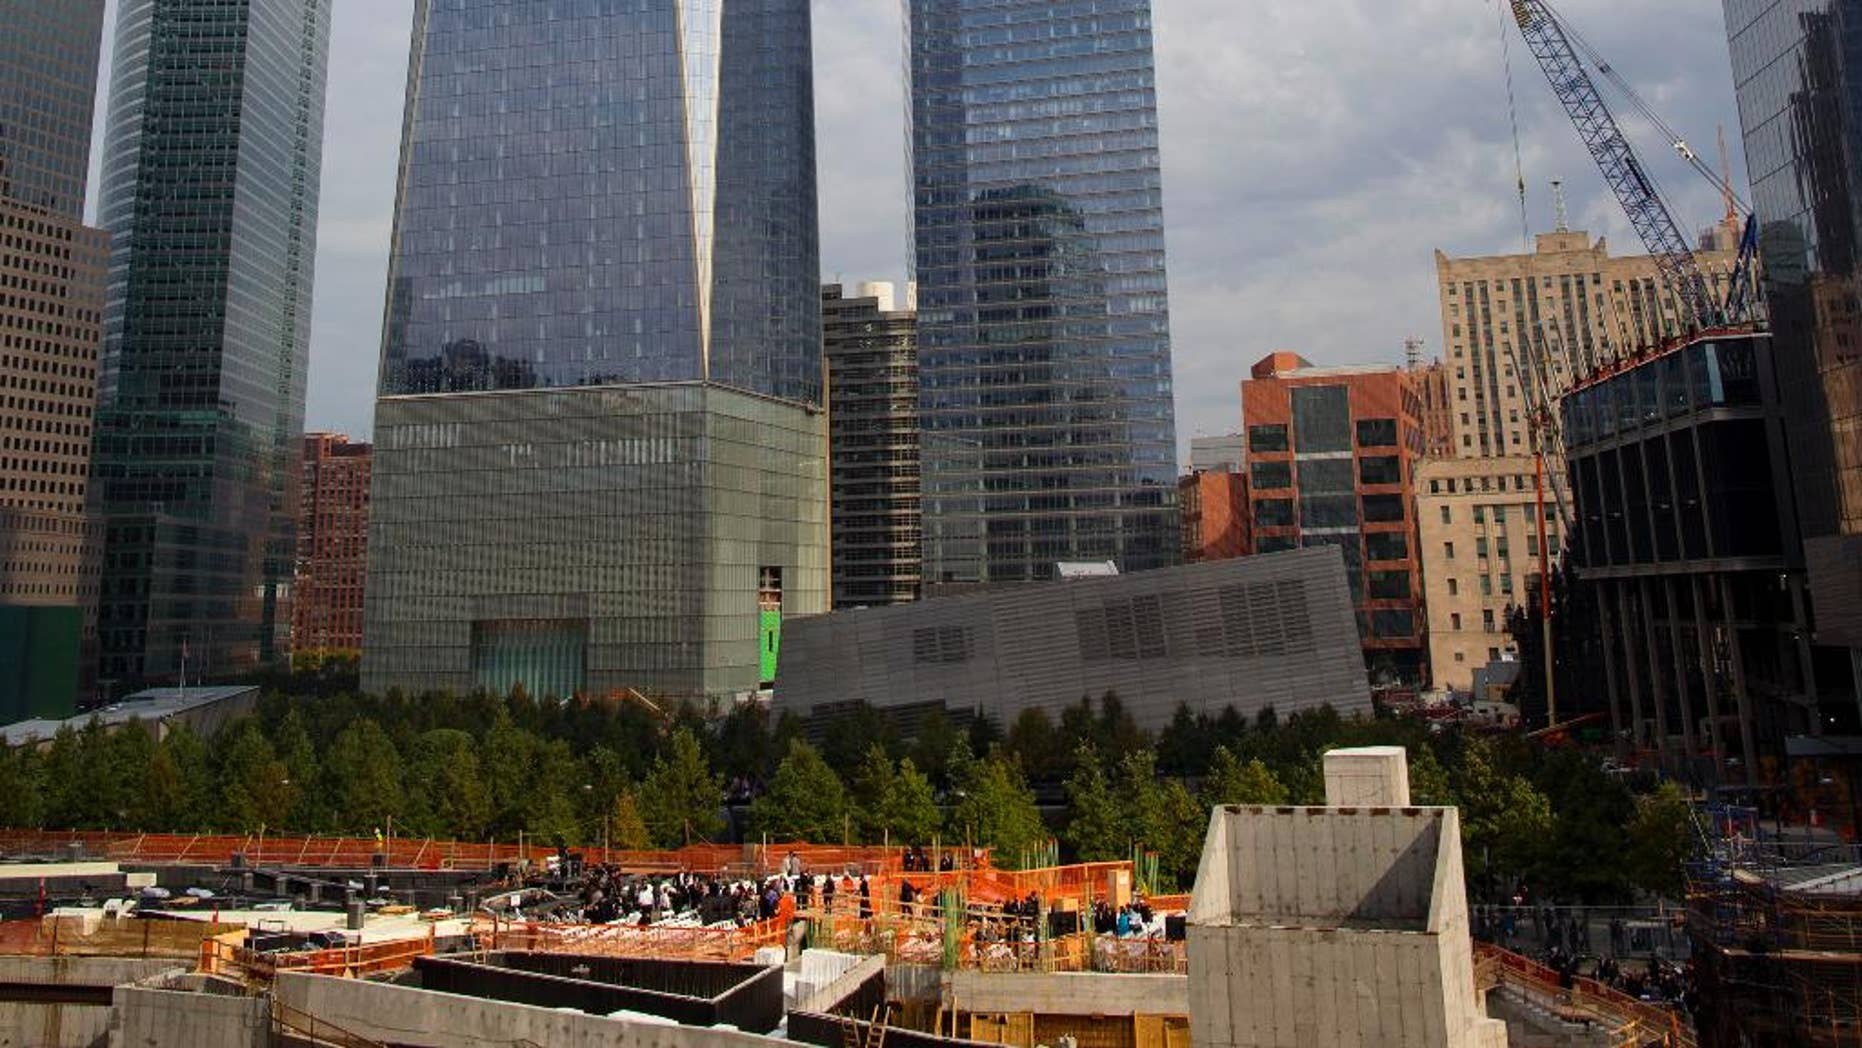 File-This Oct. 18, 2014, file photo shows One World Trade Center in the background, as people gather, bottom, for a groundbreaking ceremony at the site of the St. Nicholas National Shrine, in New York.  Thirteen years after the 9/11 terrorist attack, the resurrected World Trade Center is again opening for business, marking an emotional milestone for both New Yorkers and the nation. Publishing giant Conde Nast will start moving Monday, Nov. 3, 2014, into One World Trade, a 104-story, $3.9 billion skyscraper that dominates the Manhattan skyline. It is America's tallest building. (AP Photo/Craig Ruttle, File)